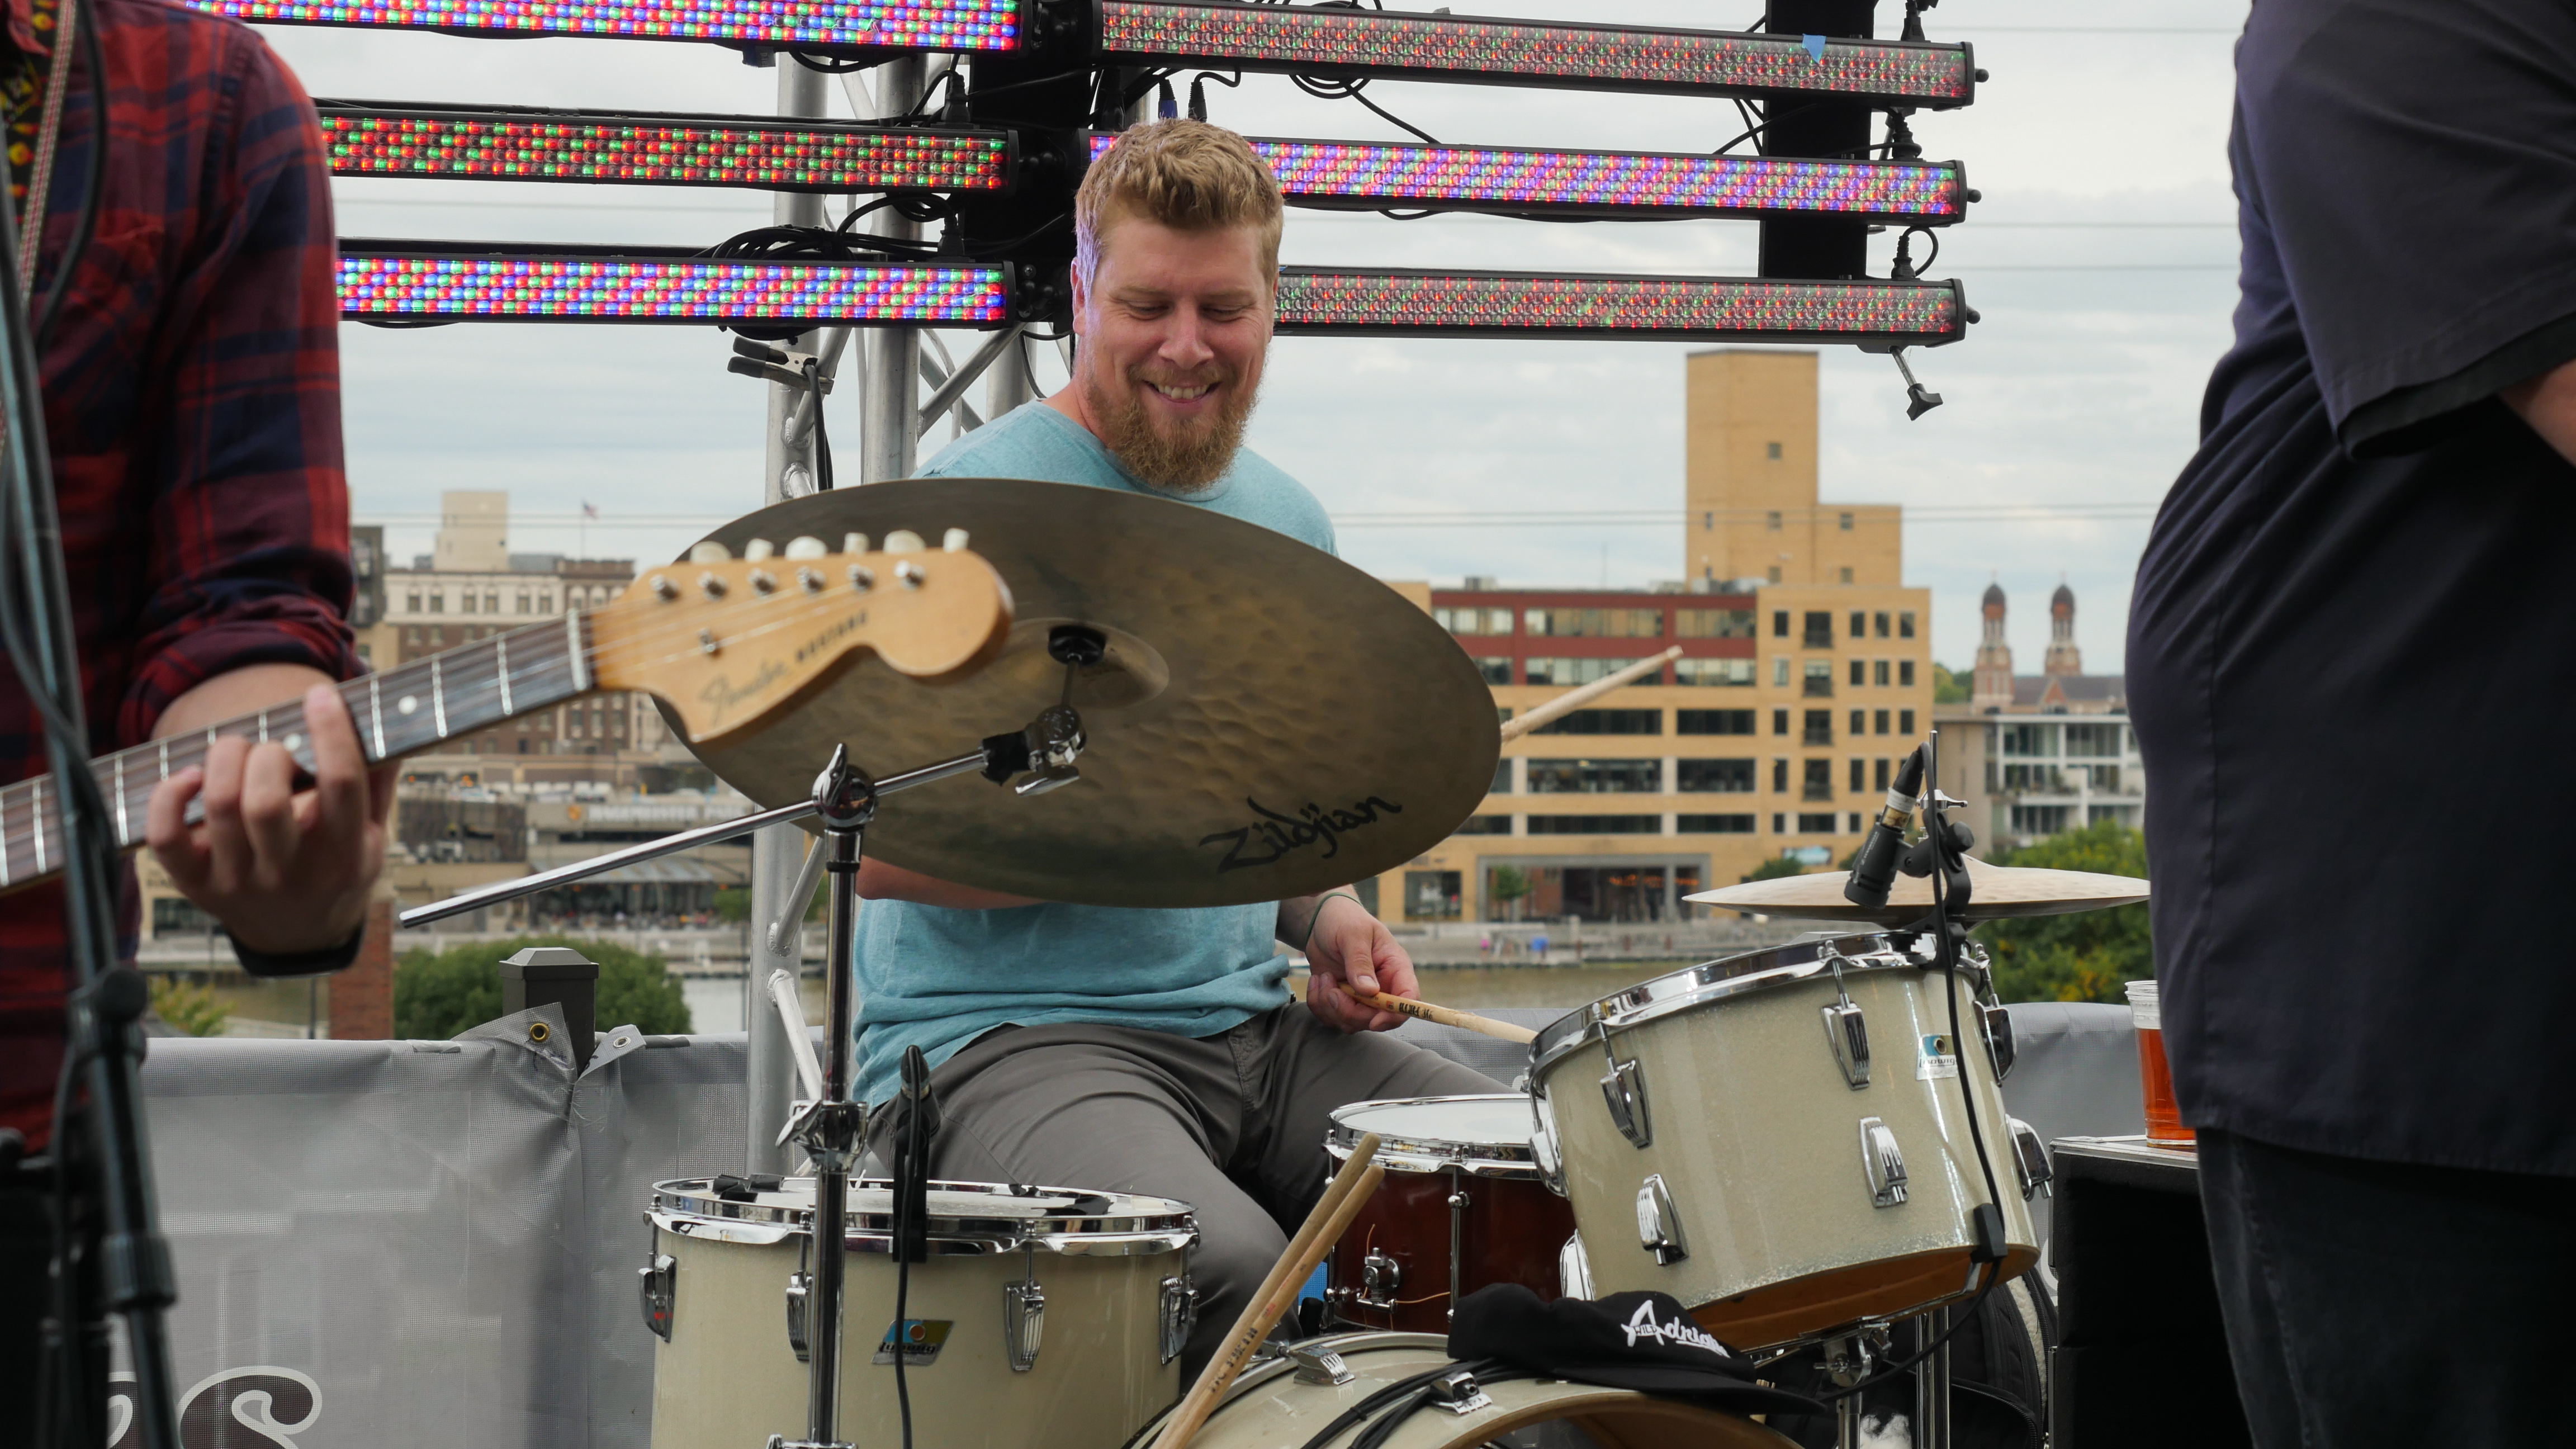 Appleton's J-Council performing Hopeland Festival 2019 at Titletown Brewing Co.'s Rooftap in the Railyard District of downtown Green Bay, Saturday, September 7th, 2019 (WCWF/ Beni Petersen)